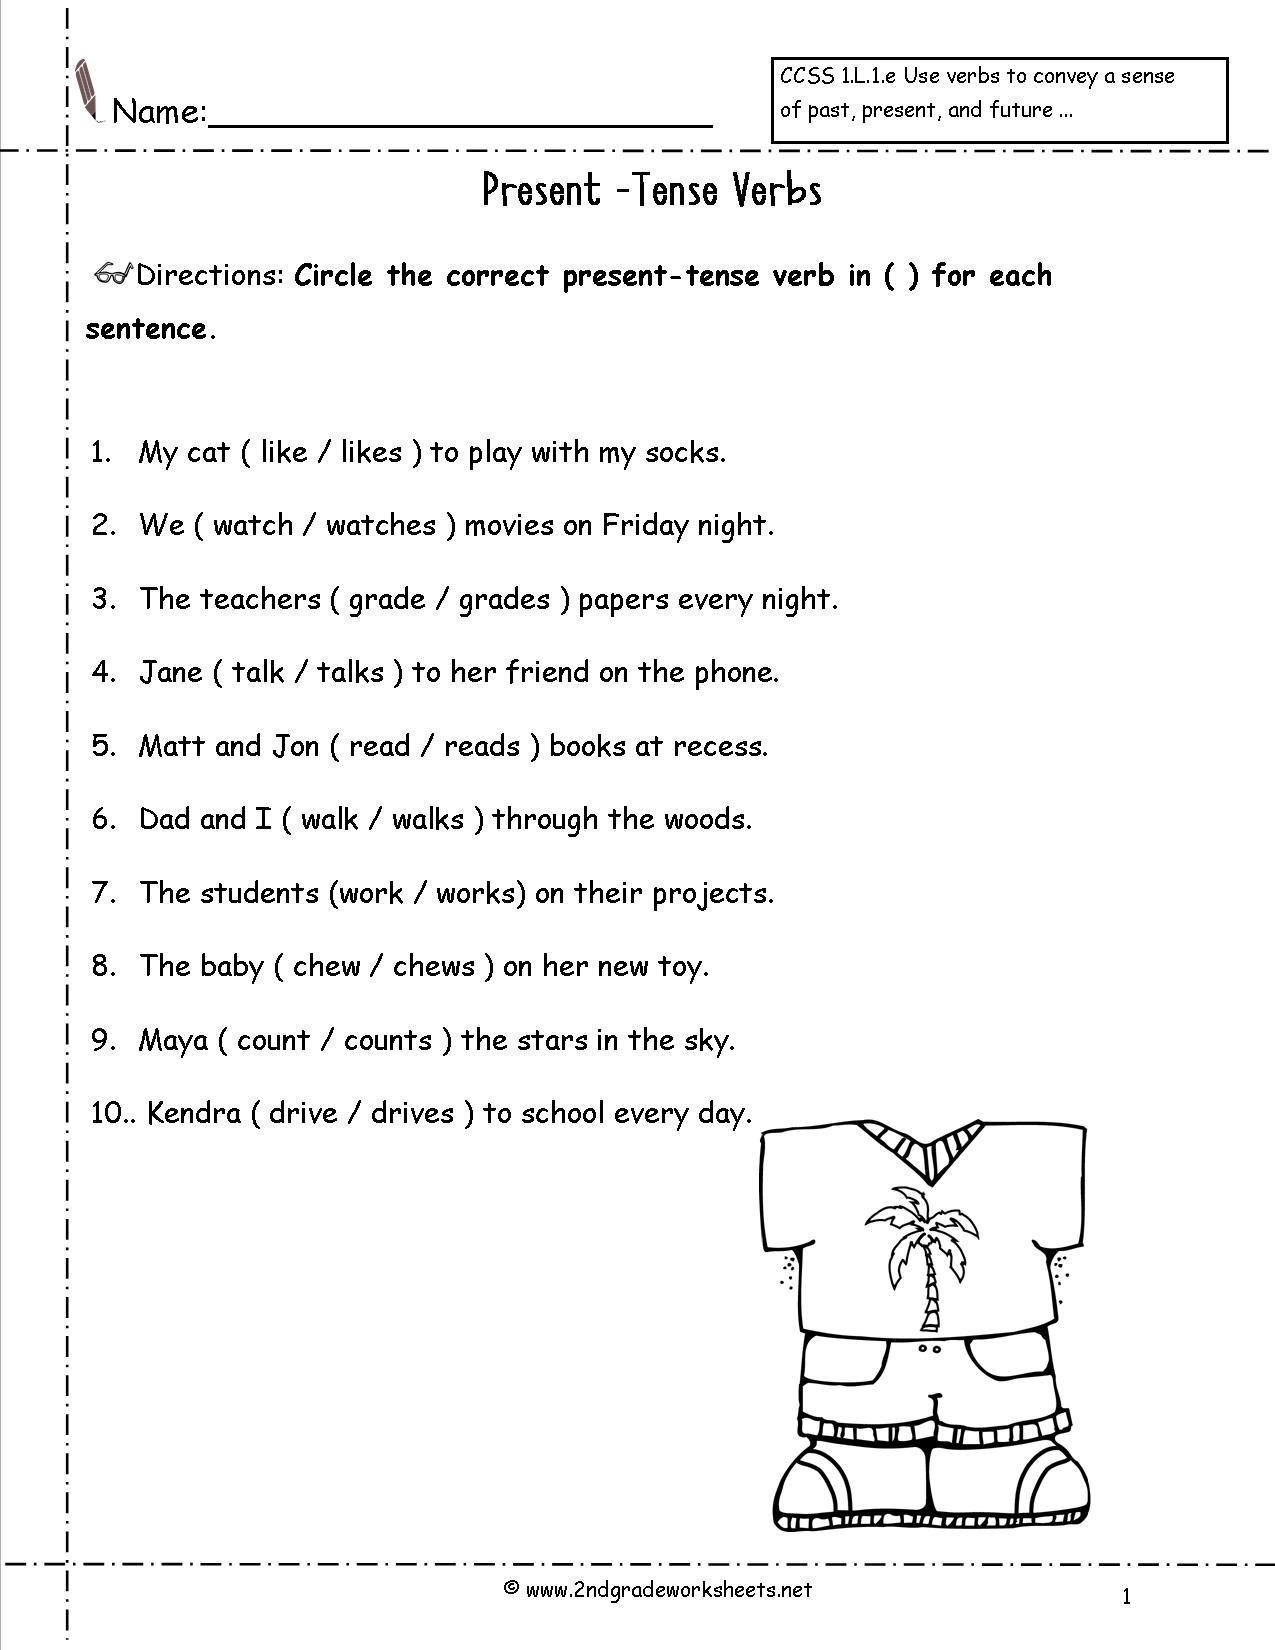 14 Best Images Of Ing Verb Worksheets